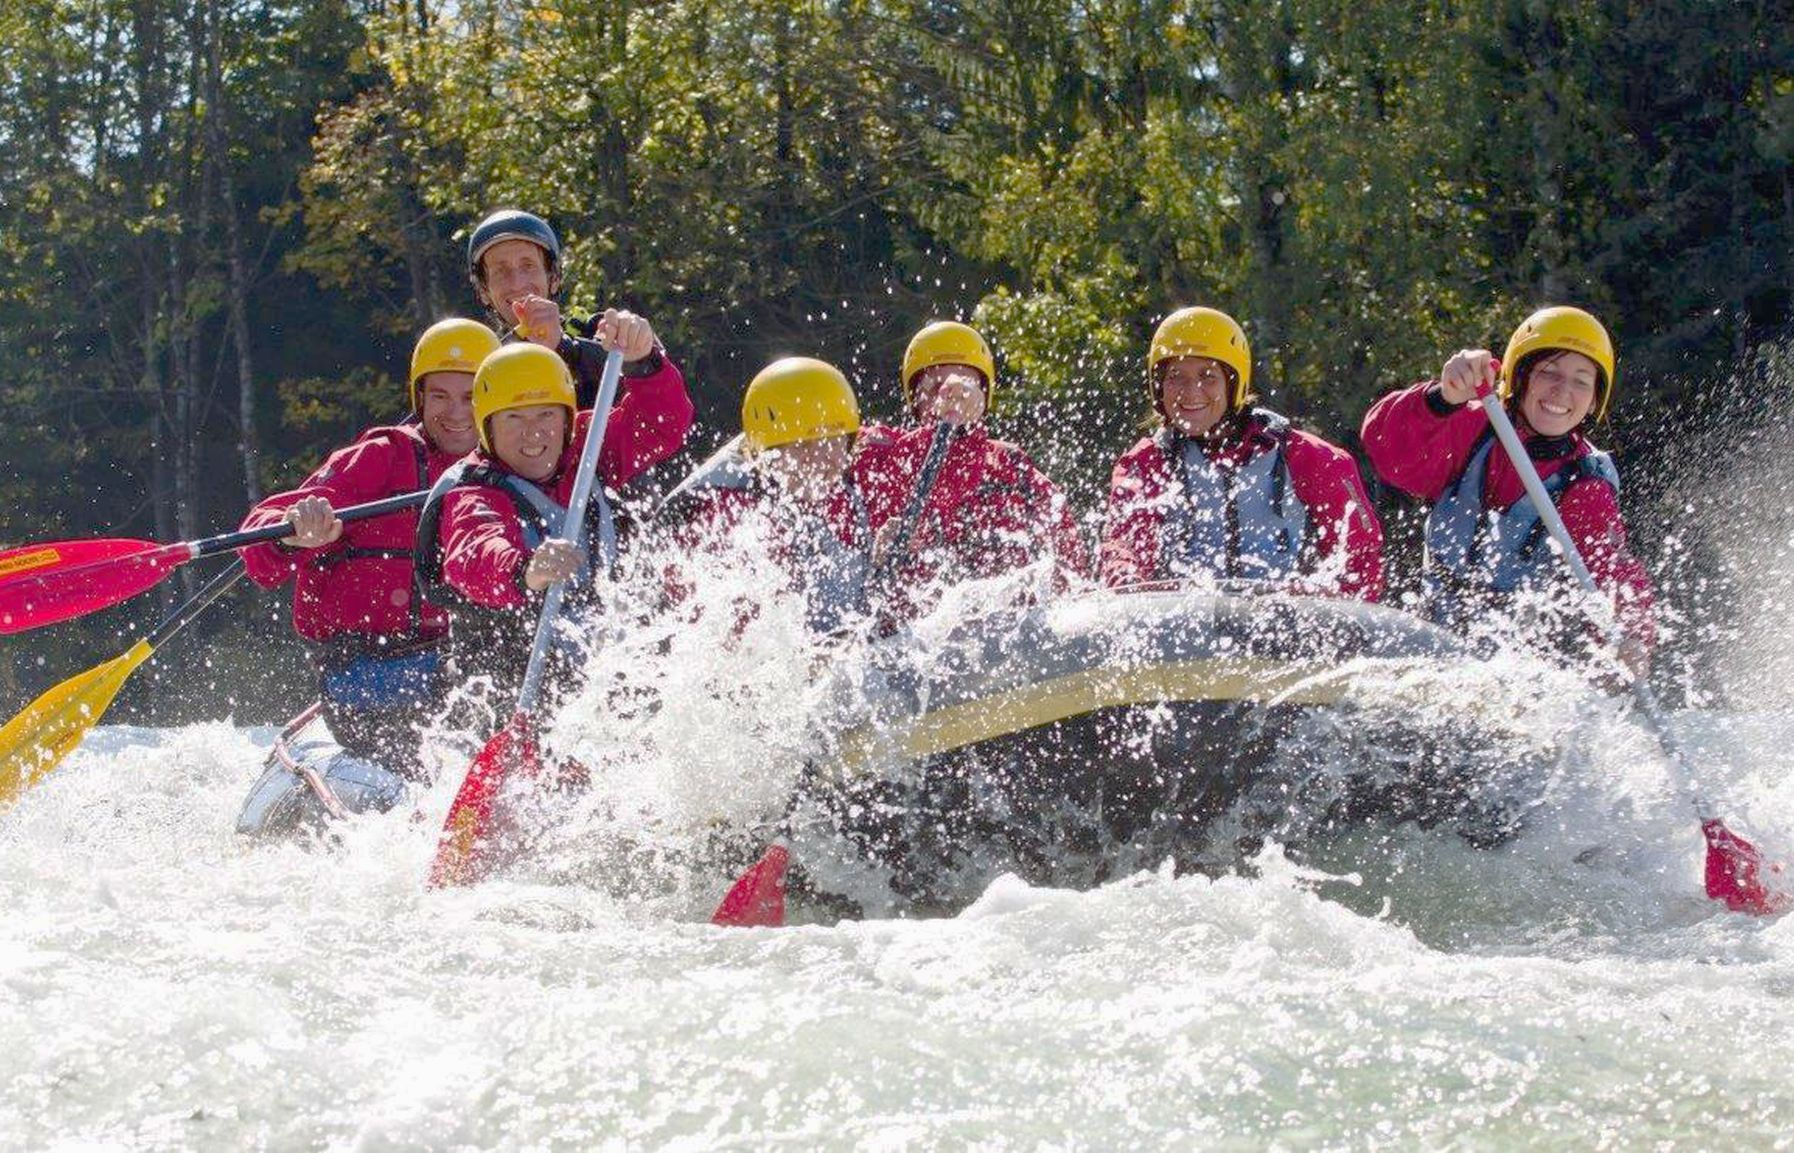 huettenevent-isar-rafting-ohne-logo-3